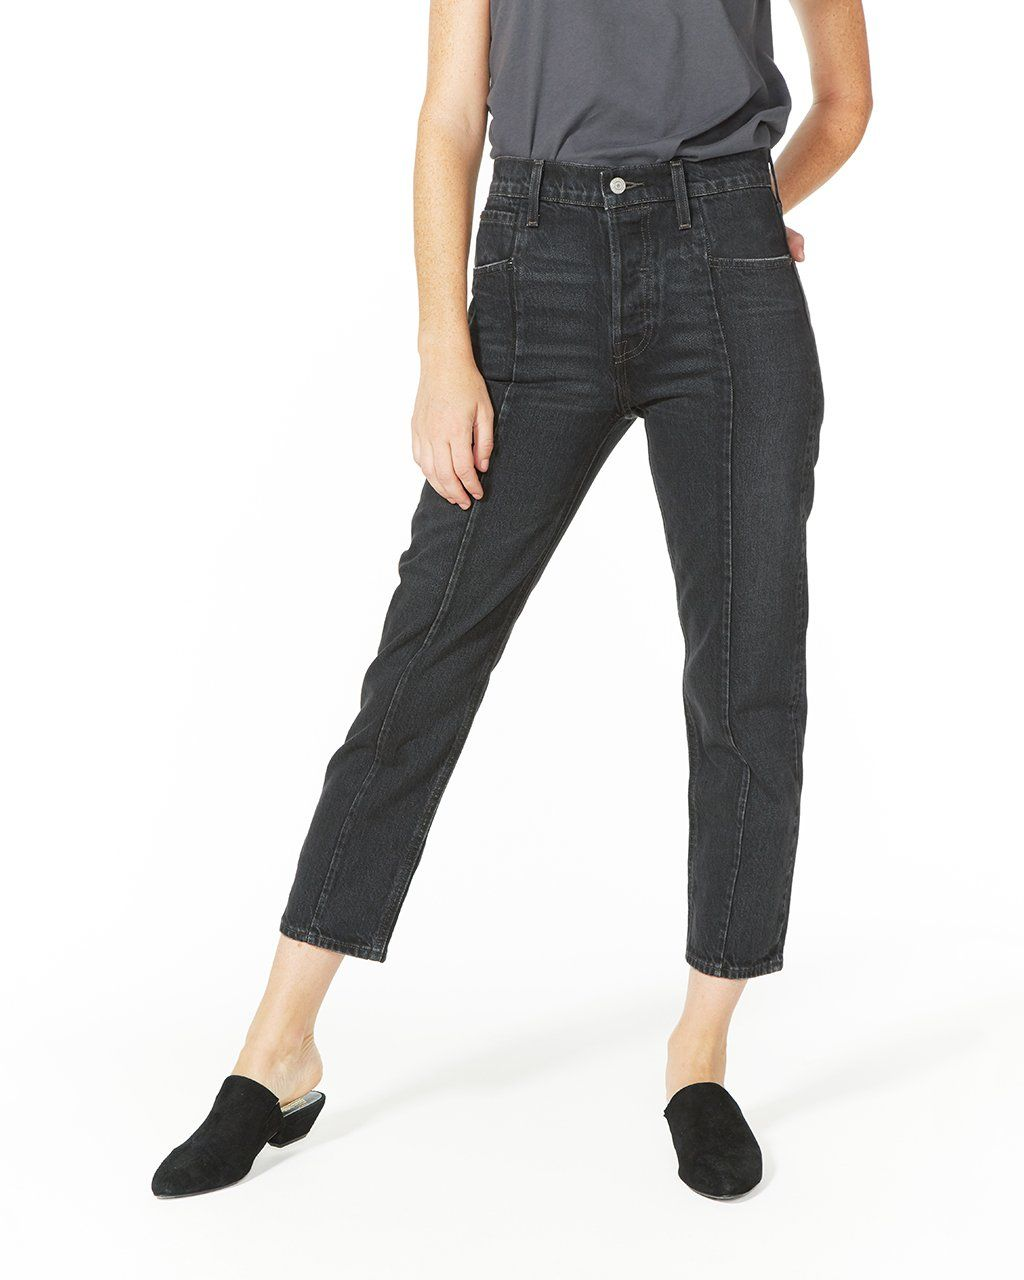 02ef76c814e30 close call altered straight jeans   clothes   Jeans, Fashion, Clothes